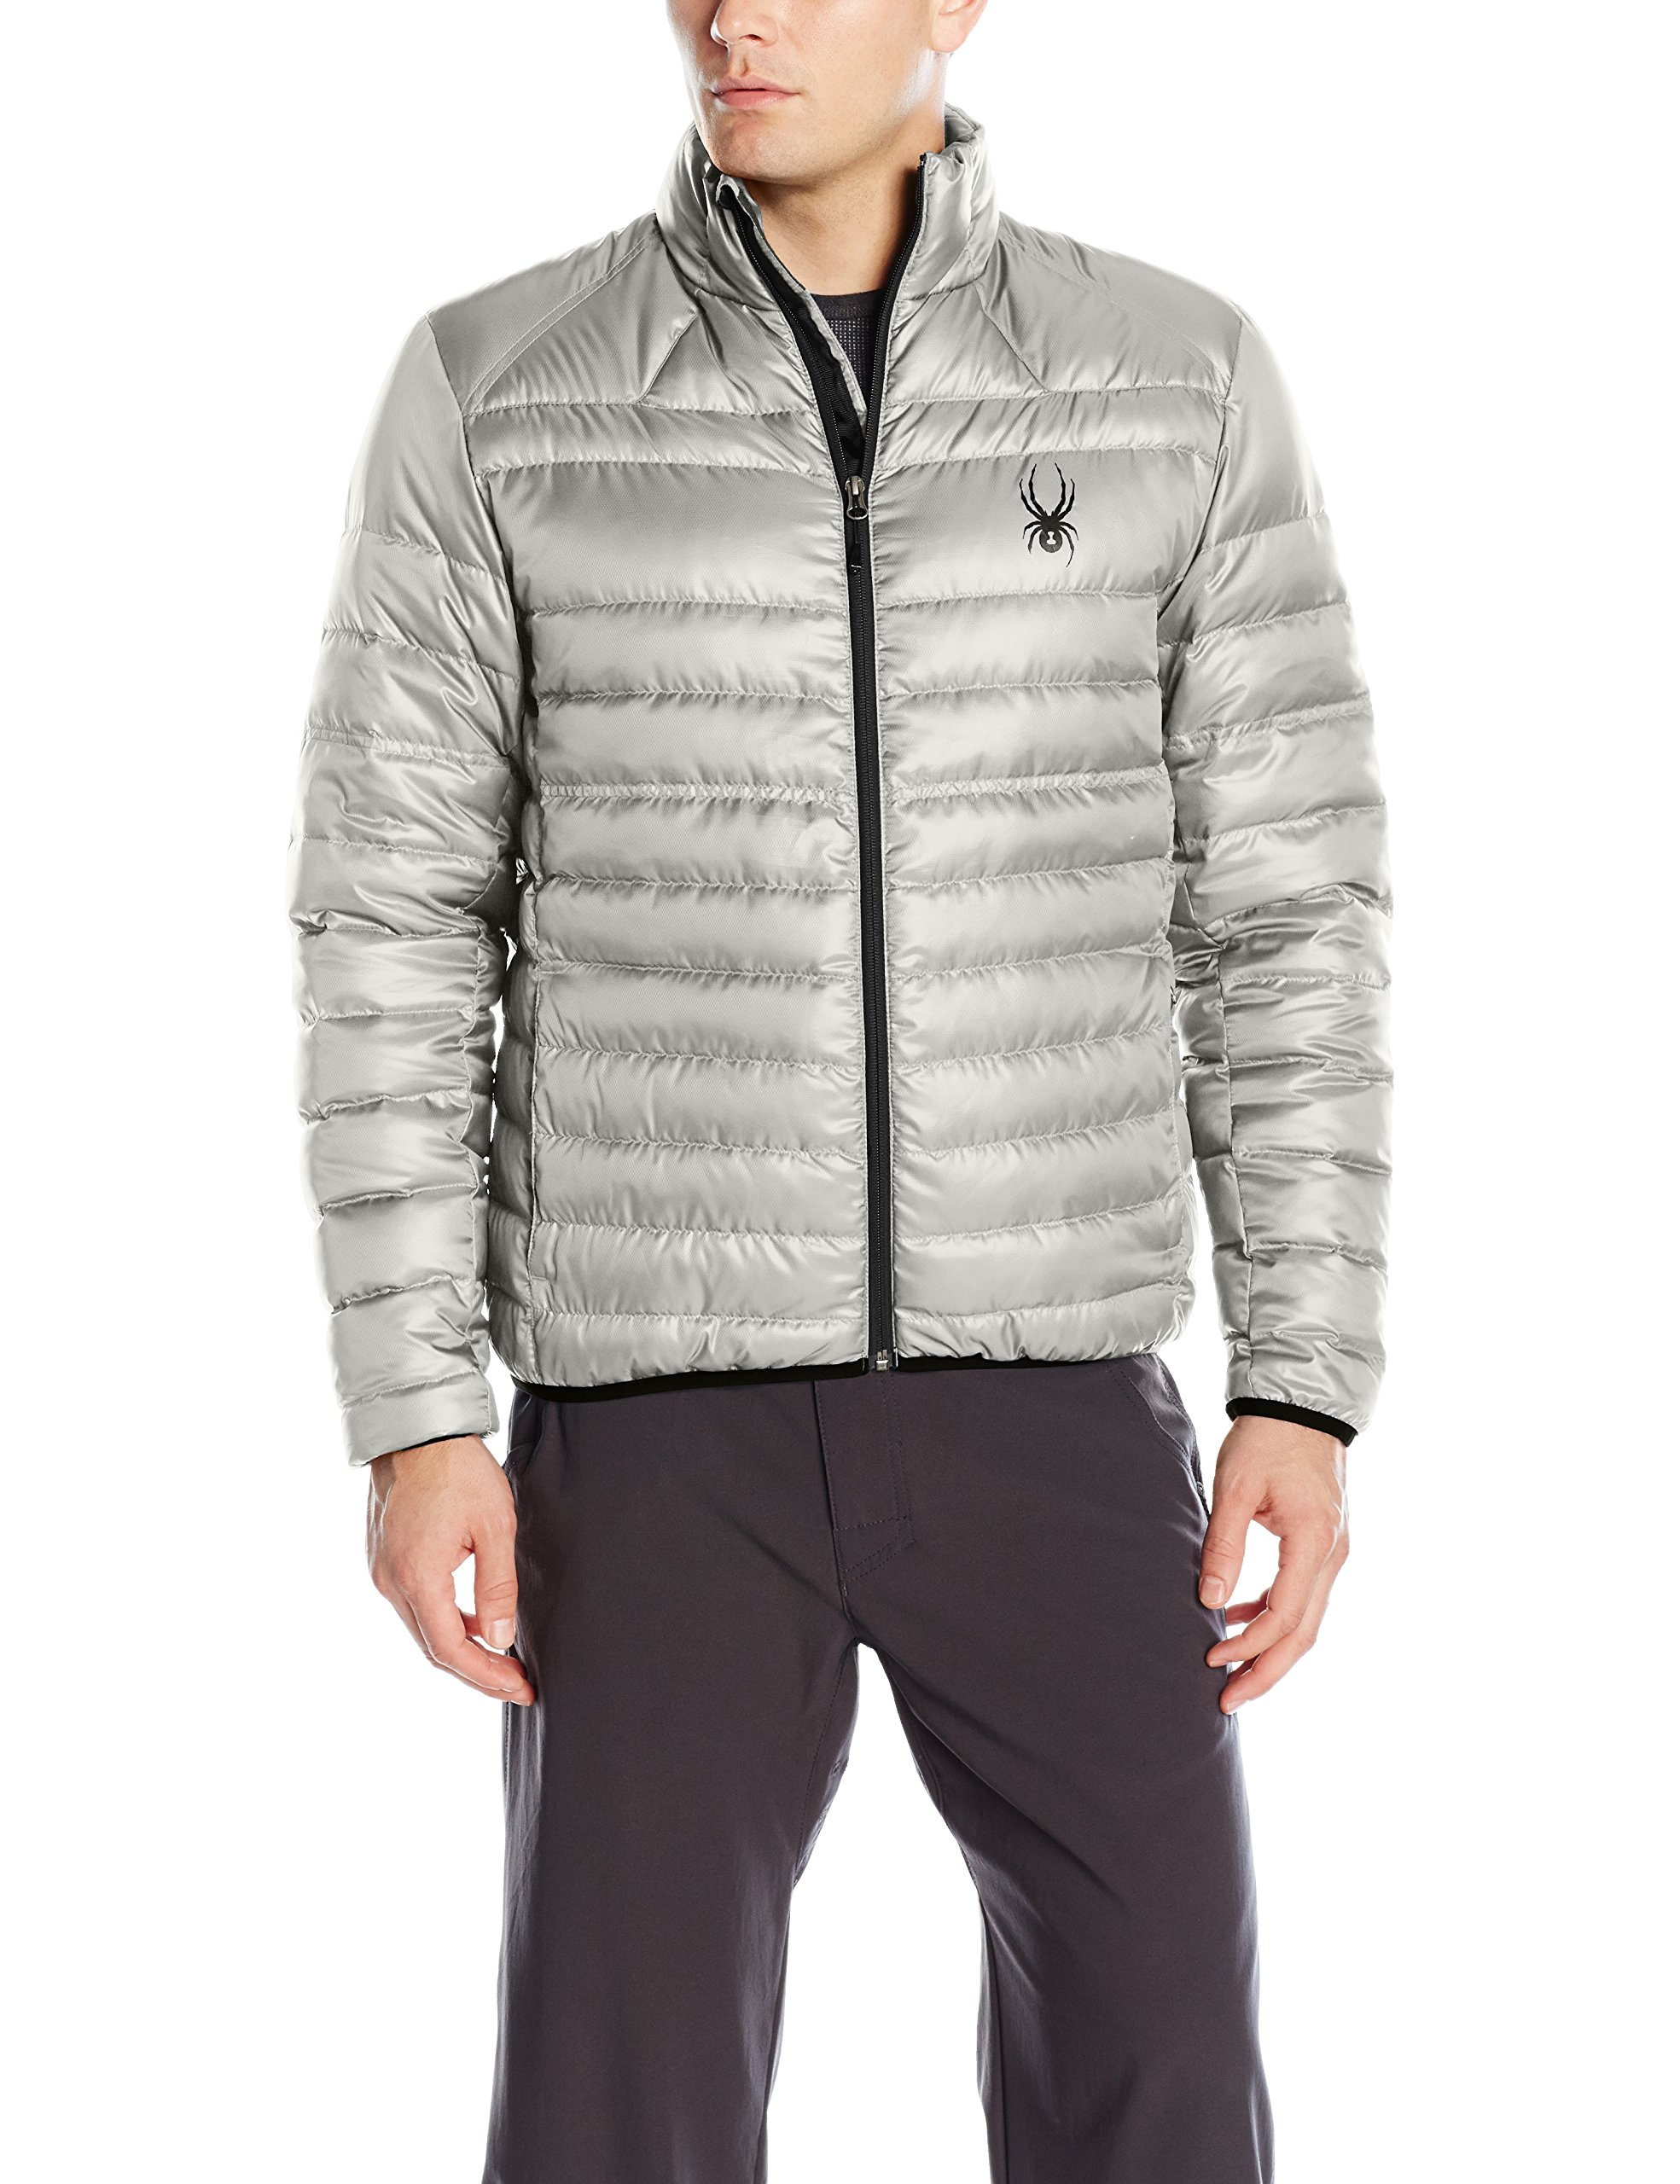 Spyder Men's Prymo Down Jacket, Cirrus/Black, Small by Spyder